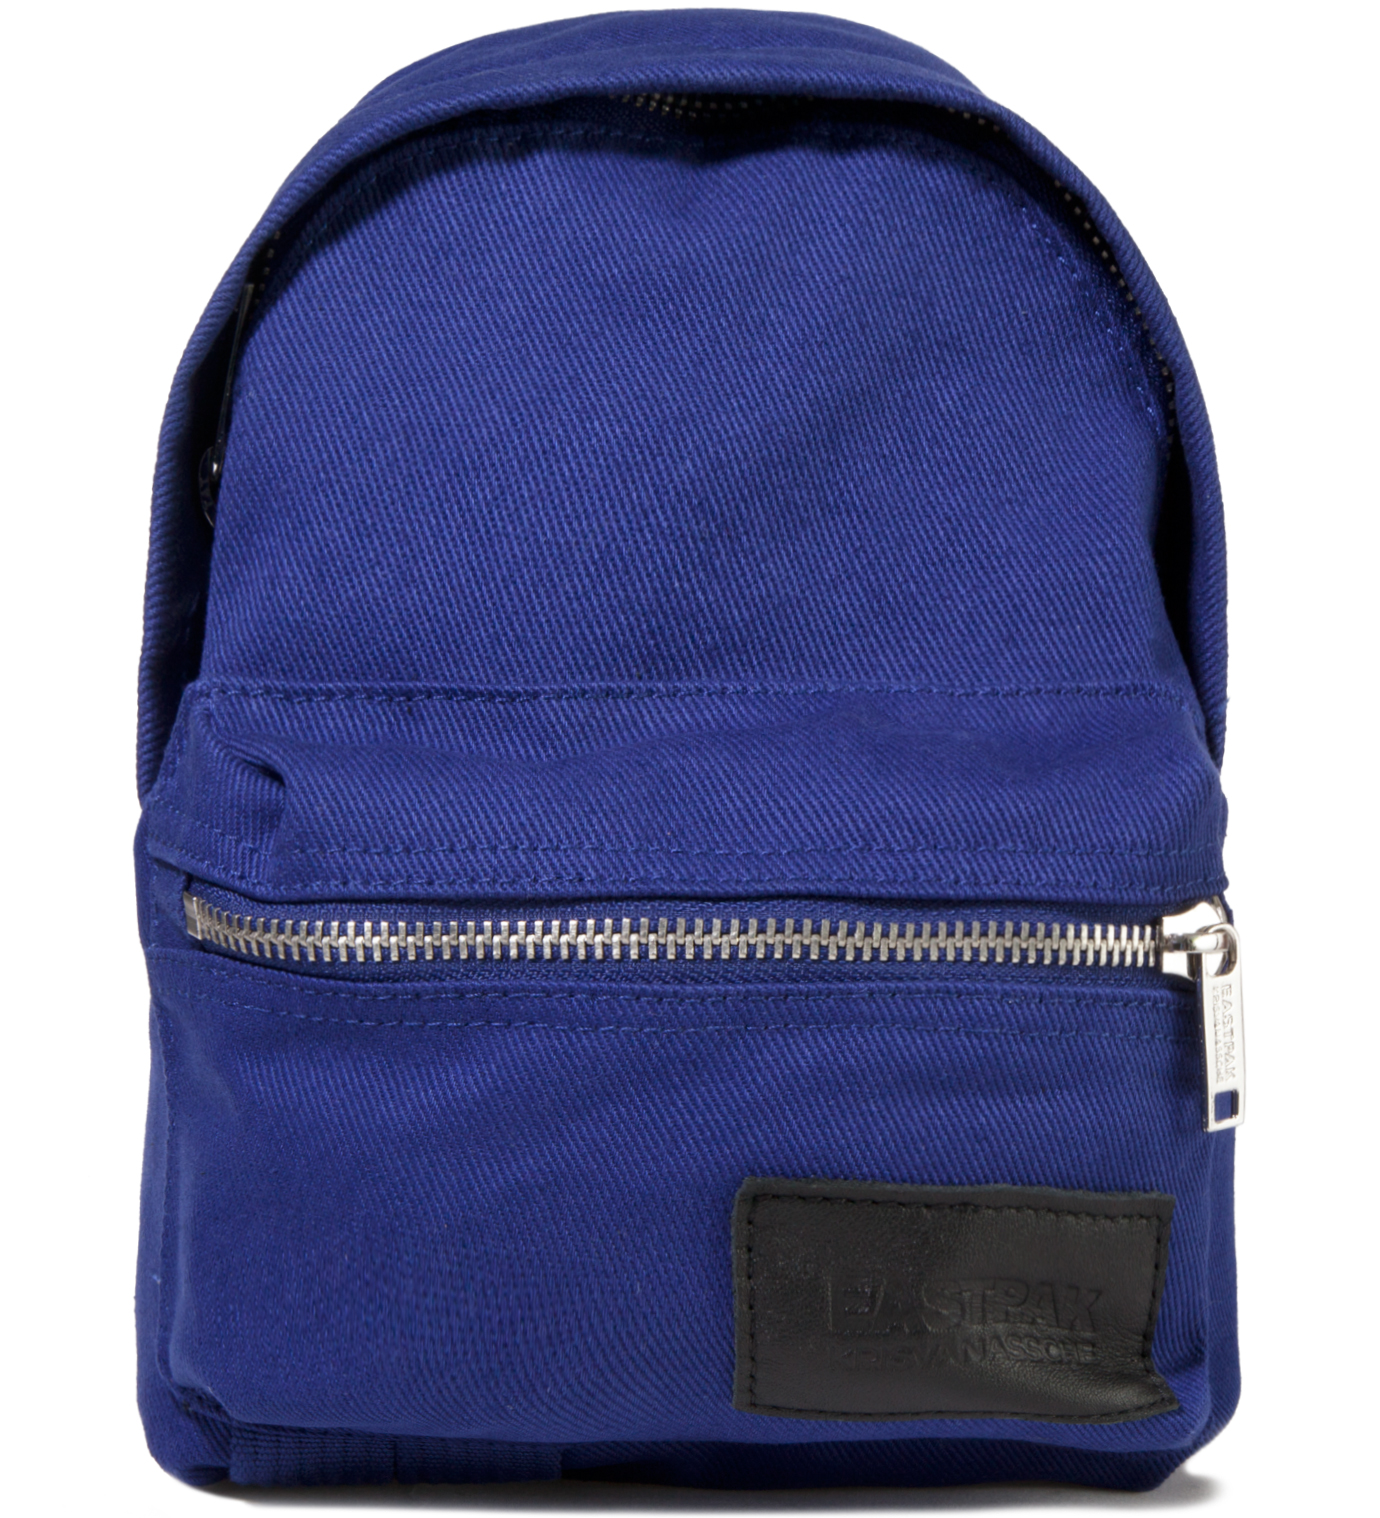 KRISVANASSCHE Eastpak KRISVANASSCHE Blue Cotton Mini Backpack Pouch